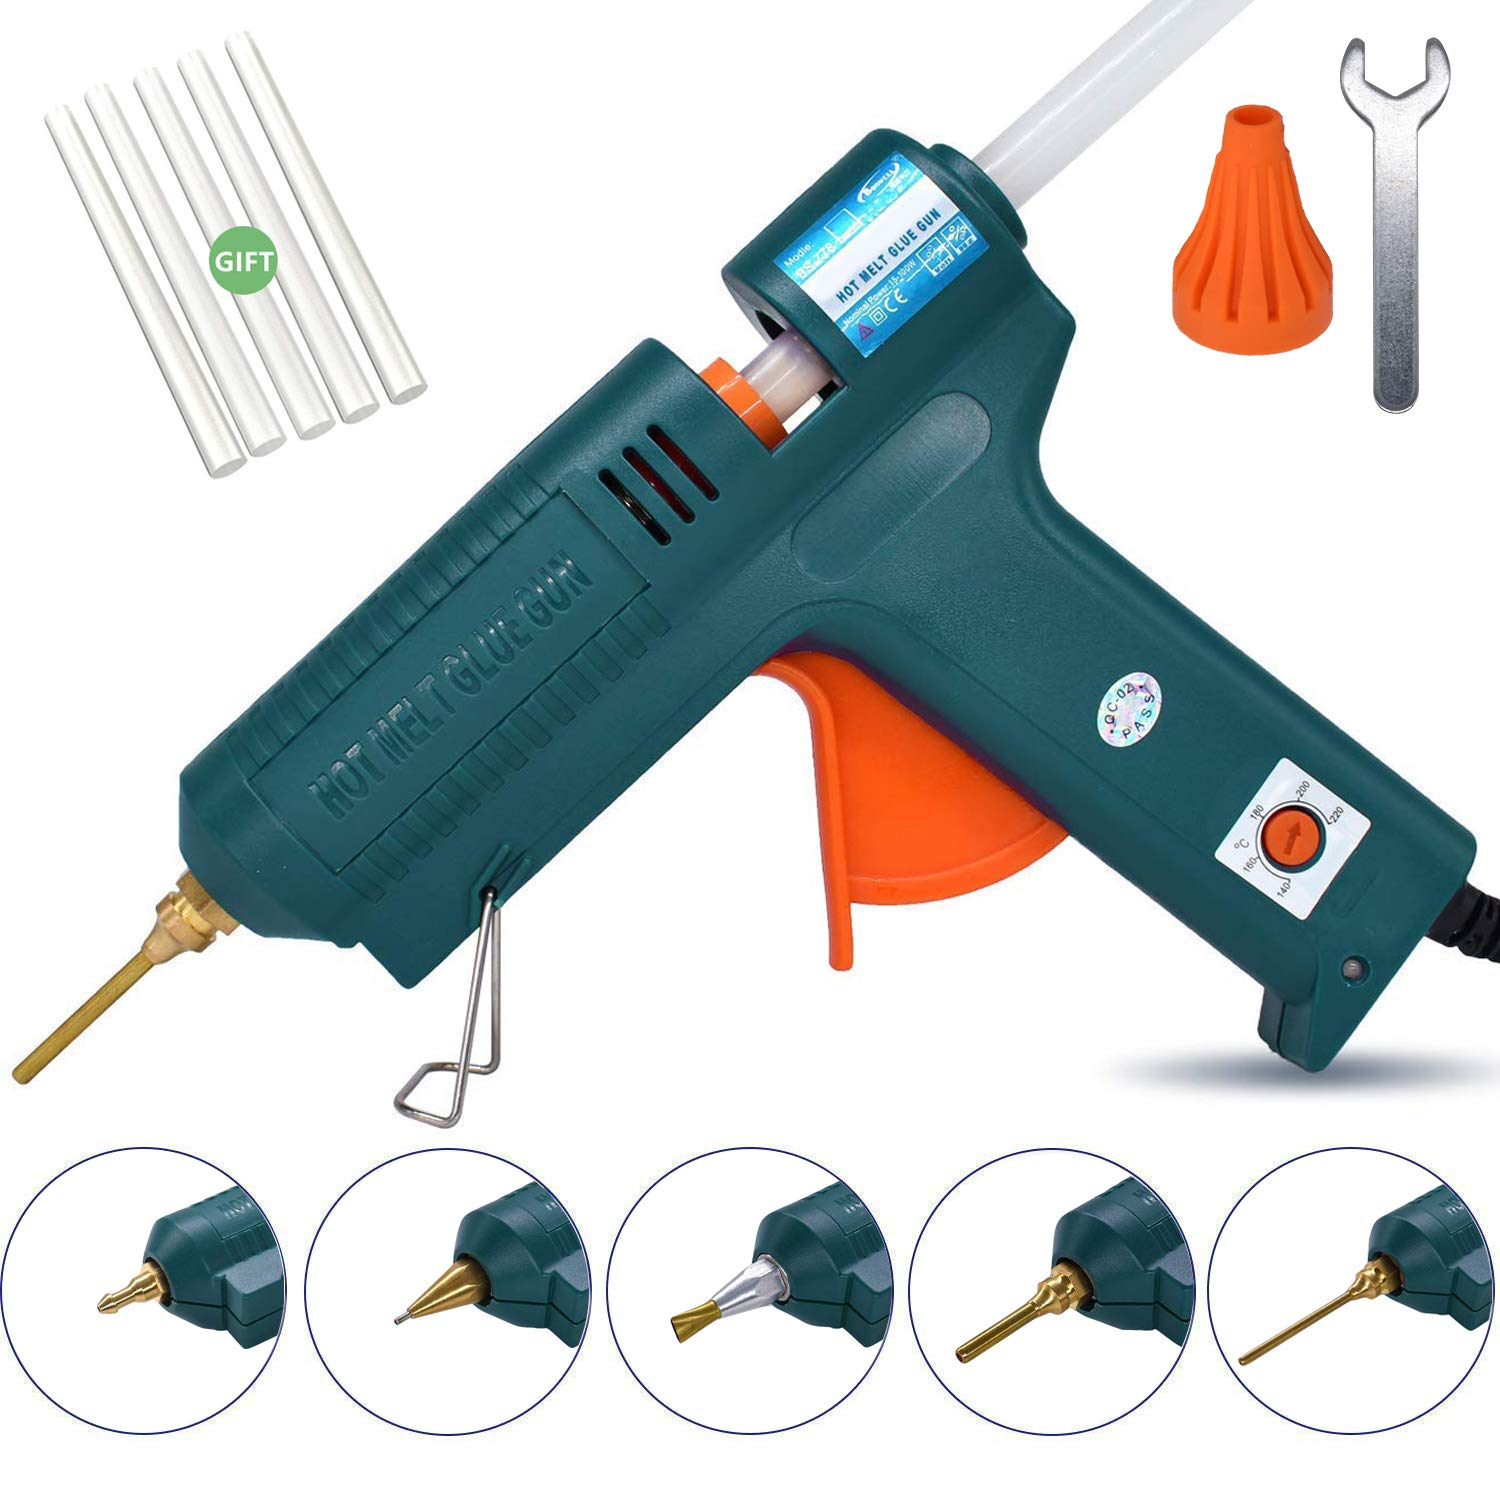 Full Size Hot Glue Gun, 150 Watts with 6 Copper Nozzles Temperature Adjustable Craft Repair Tool Professional Melting Glue Gun DIY Thermo Tool Include 5Pcs Highly Viscous Glue Sticks Luxury Set